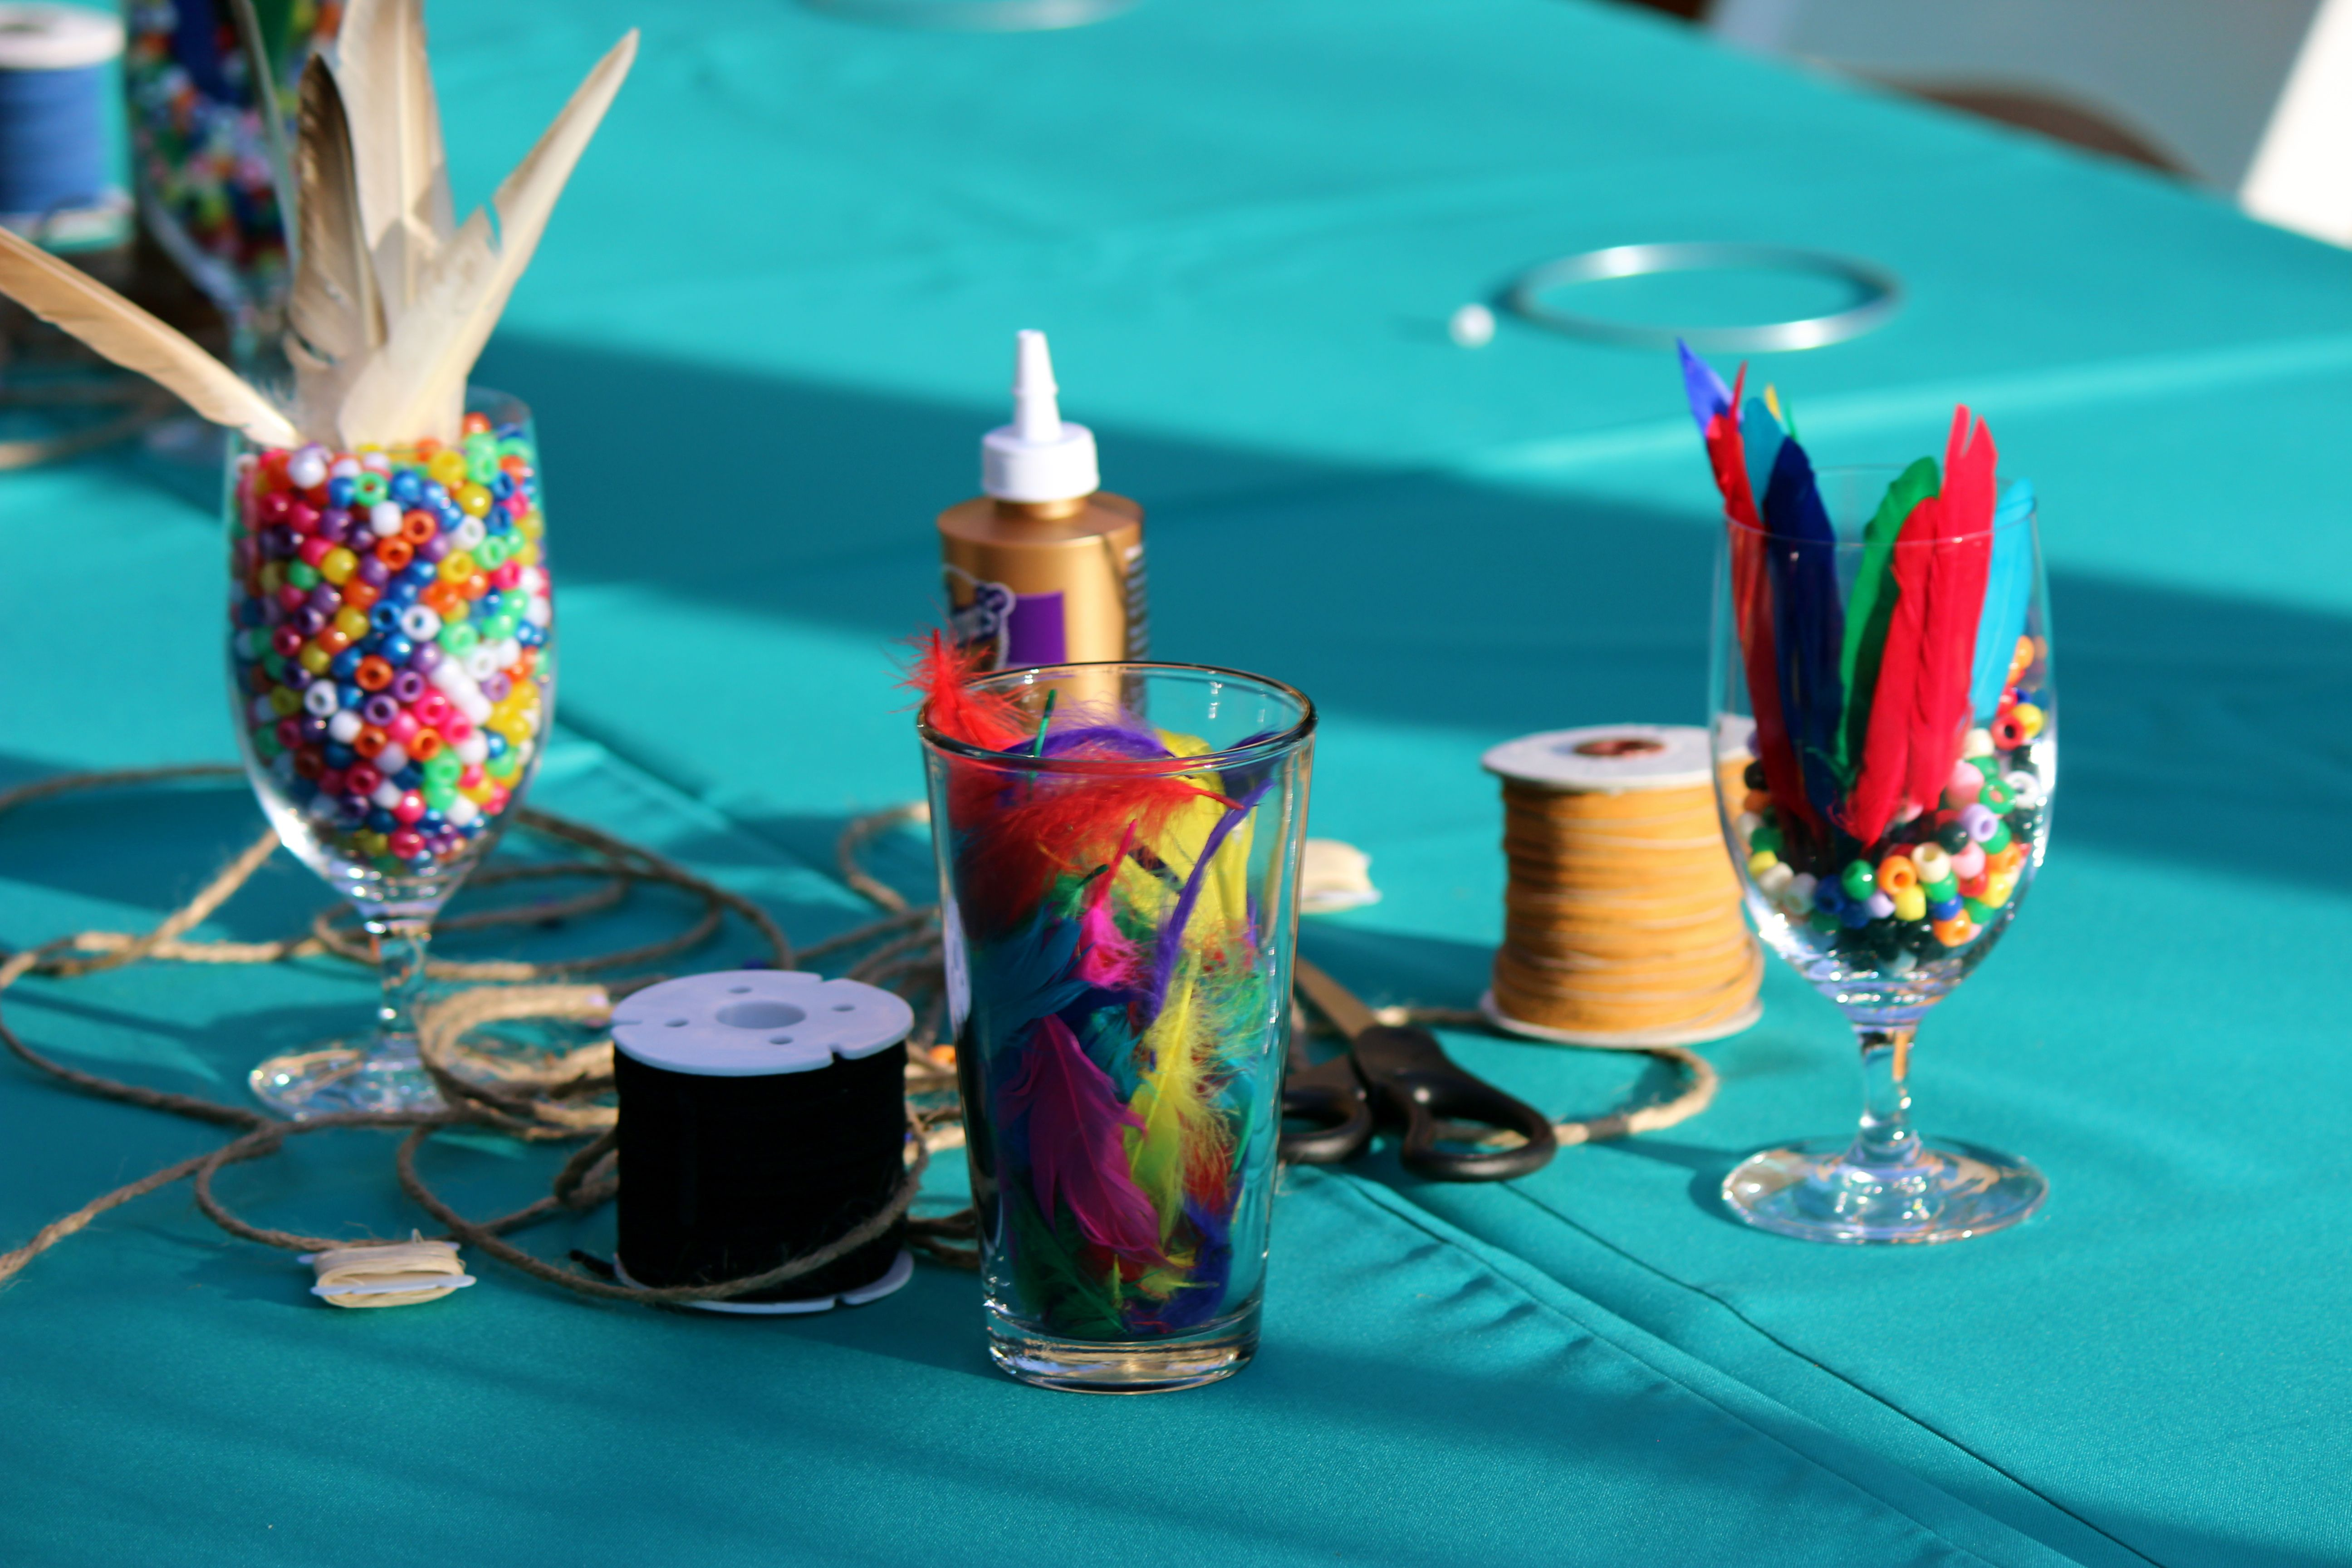 Event produced by Kapture Vision. Arts & Craft Time! Camp Retreat